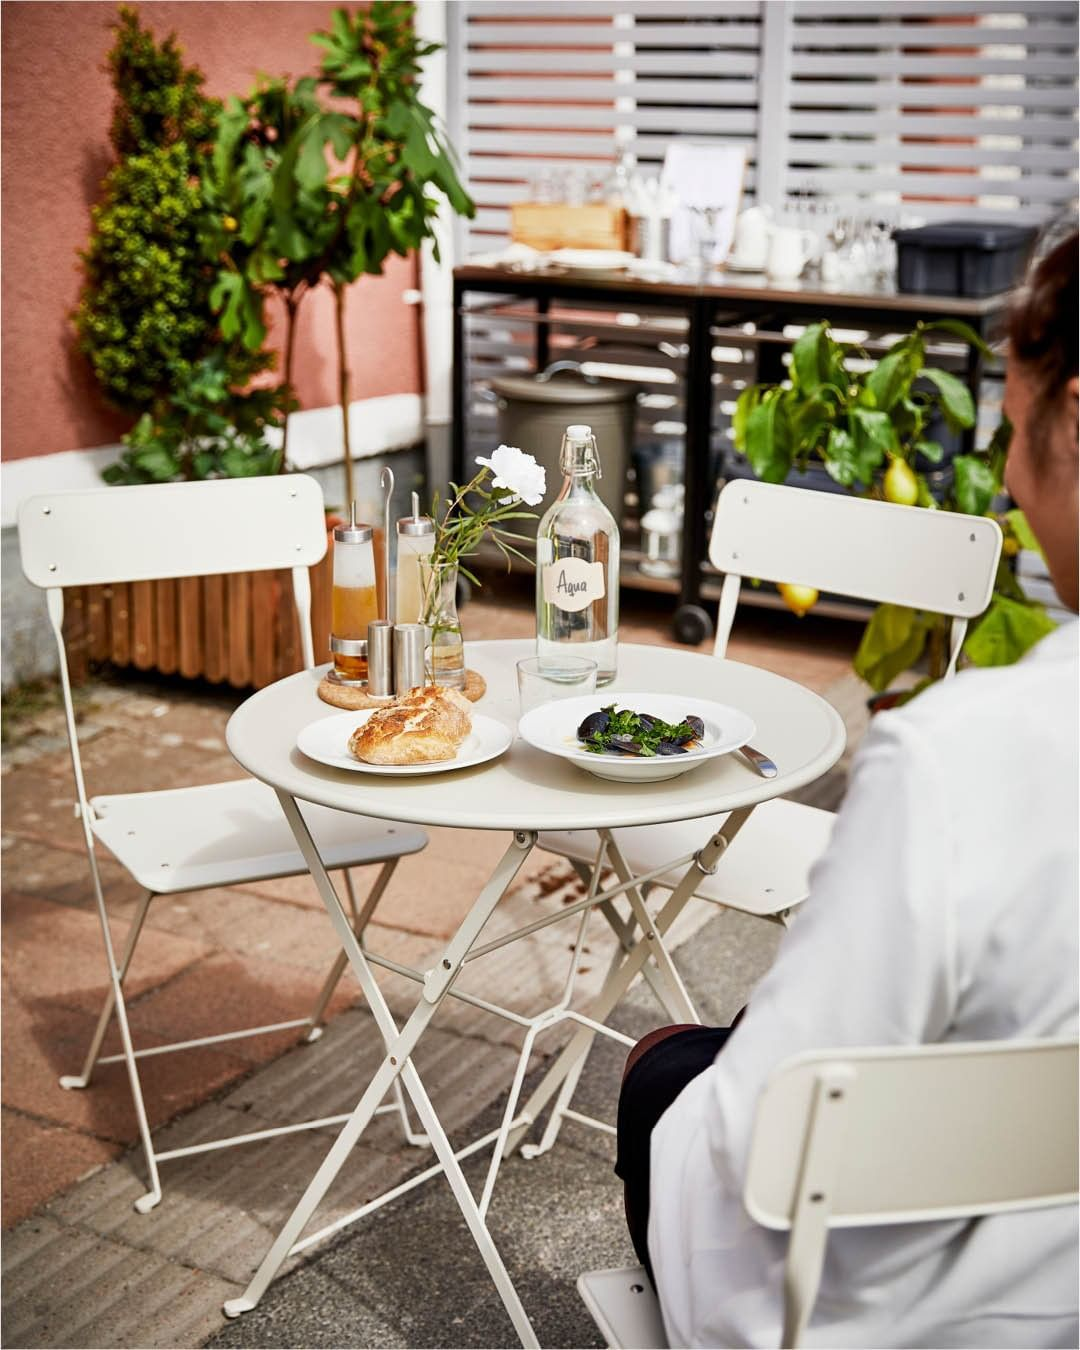 Ikea Australia On Instagram Get Summer Ready With Our